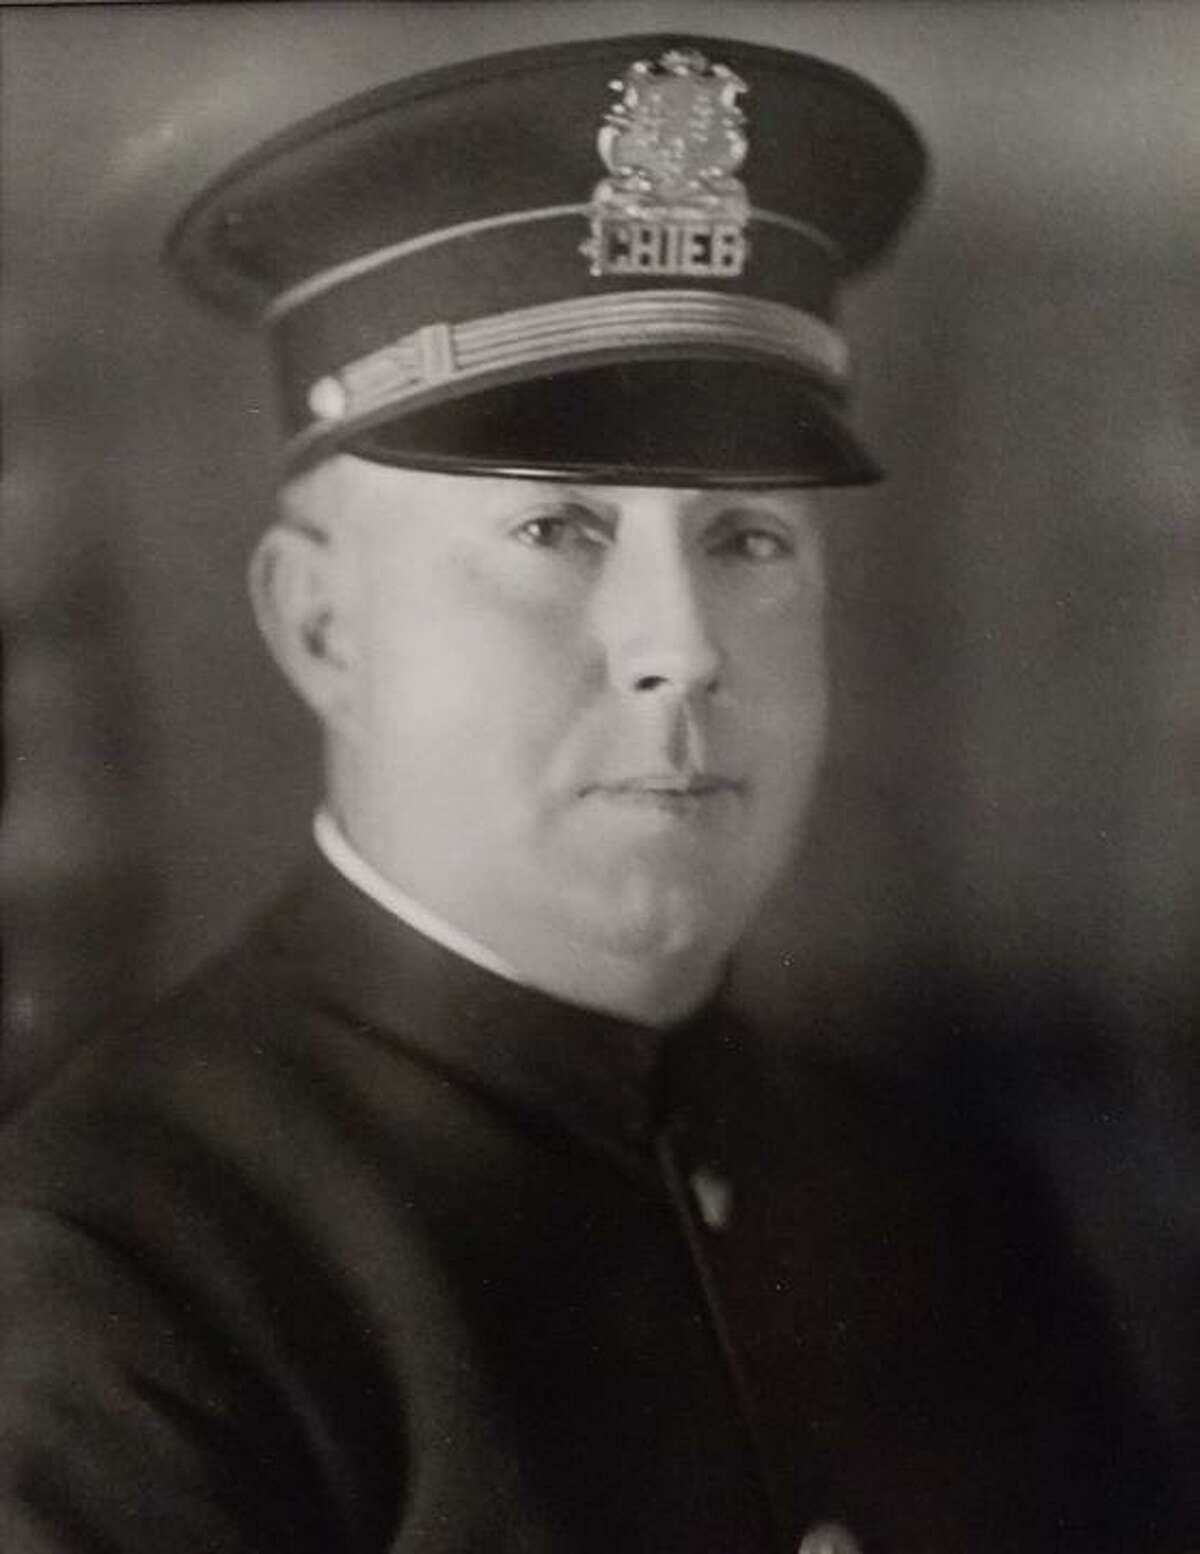 Derby Police Chief Daniel T. O'Dell had a miraculous escape from a bullet while serving the Police Department in 1911.